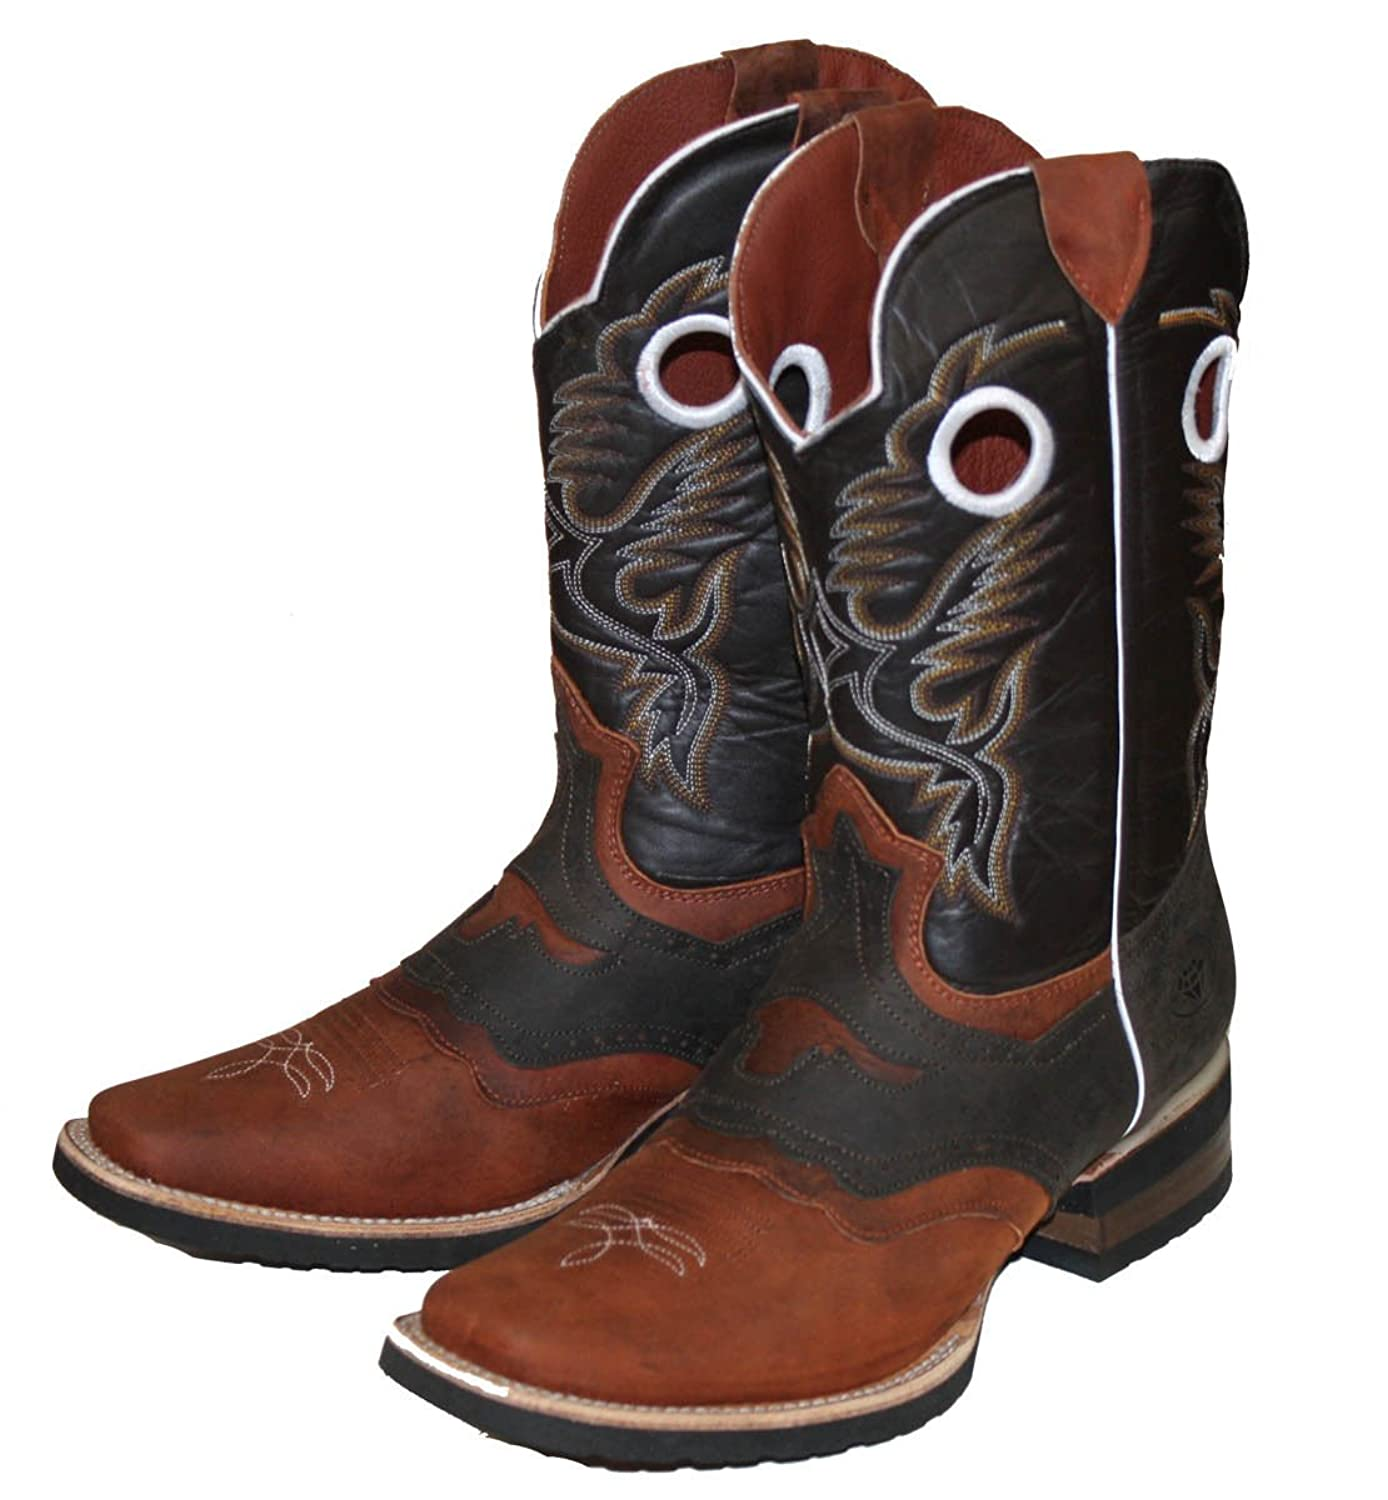 Men's Genuine Cow Hide Leather Cowboy Boots Animal Print